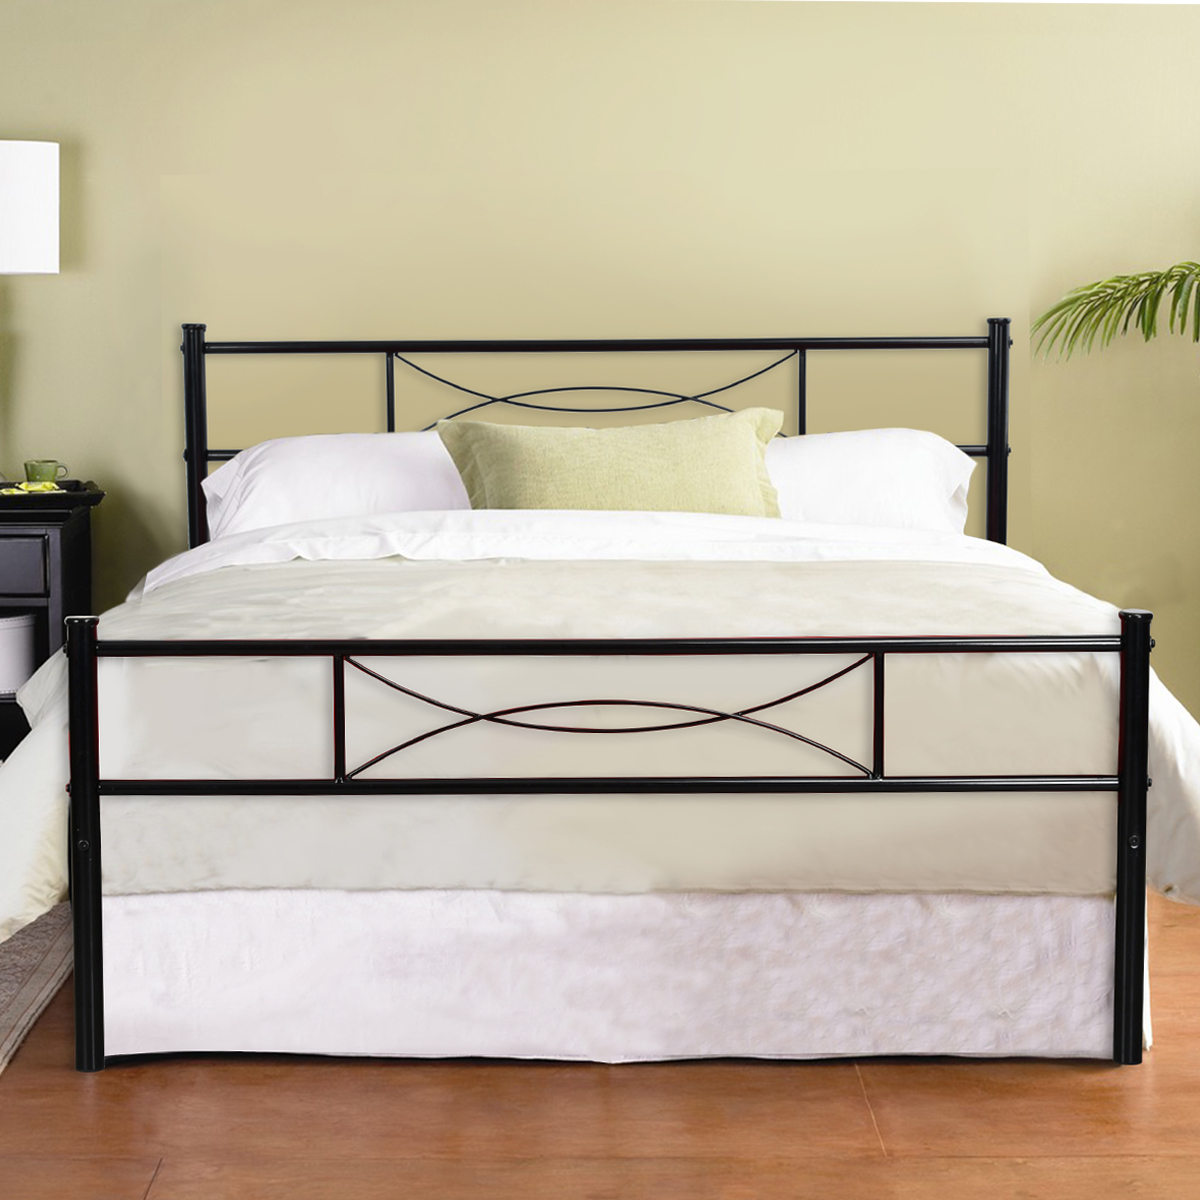 platform metal bed frame foundation headboard furniture bedroom twin full size ebay. Black Bedroom Furniture Sets. Home Design Ideas